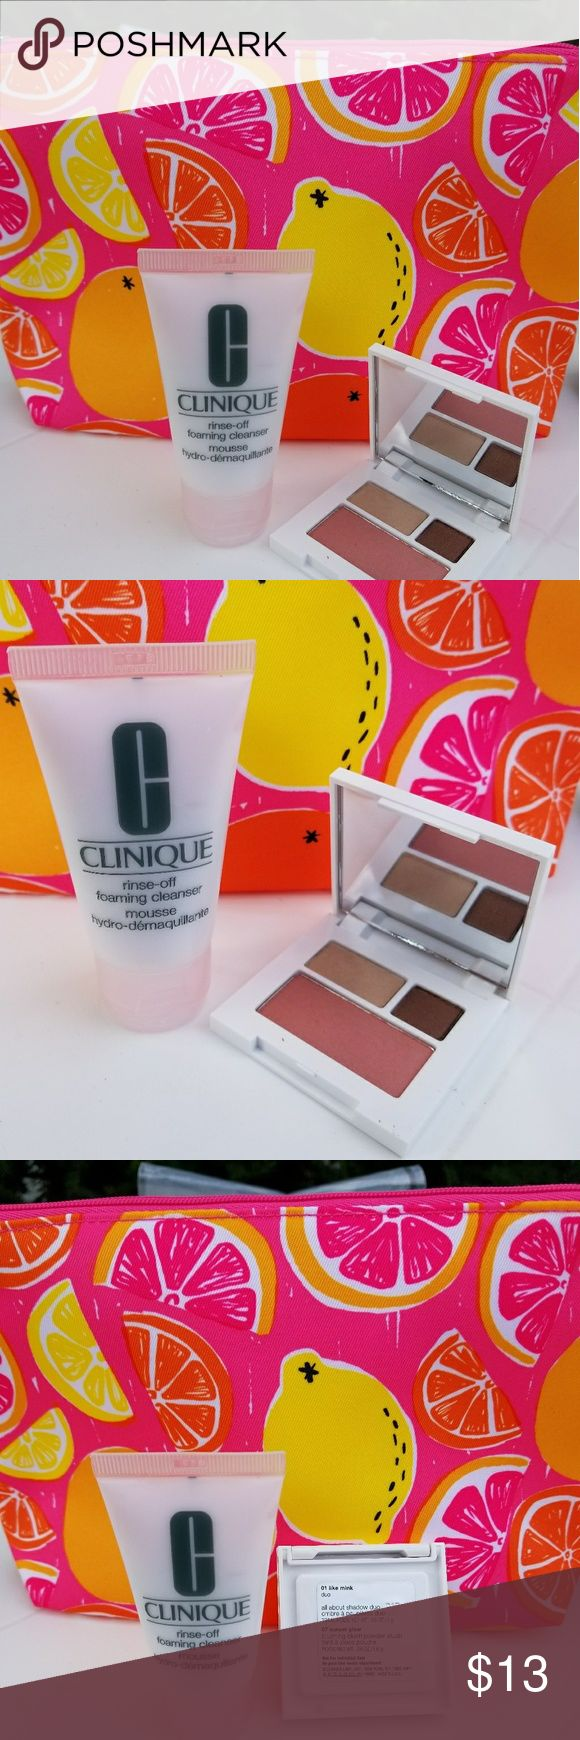 Clinique cosmetic bag 3 pcs New.  Authentic.   Clinique beautiful cosmetic bag,  includes  - eyeshadow duo, travel size.   - clinique rinse off foaming cleanser.  1 fl.oz.liq.  - pink citrus designed cosmetic bag.   Price is firm. Clinique Makeup Eyeshadow